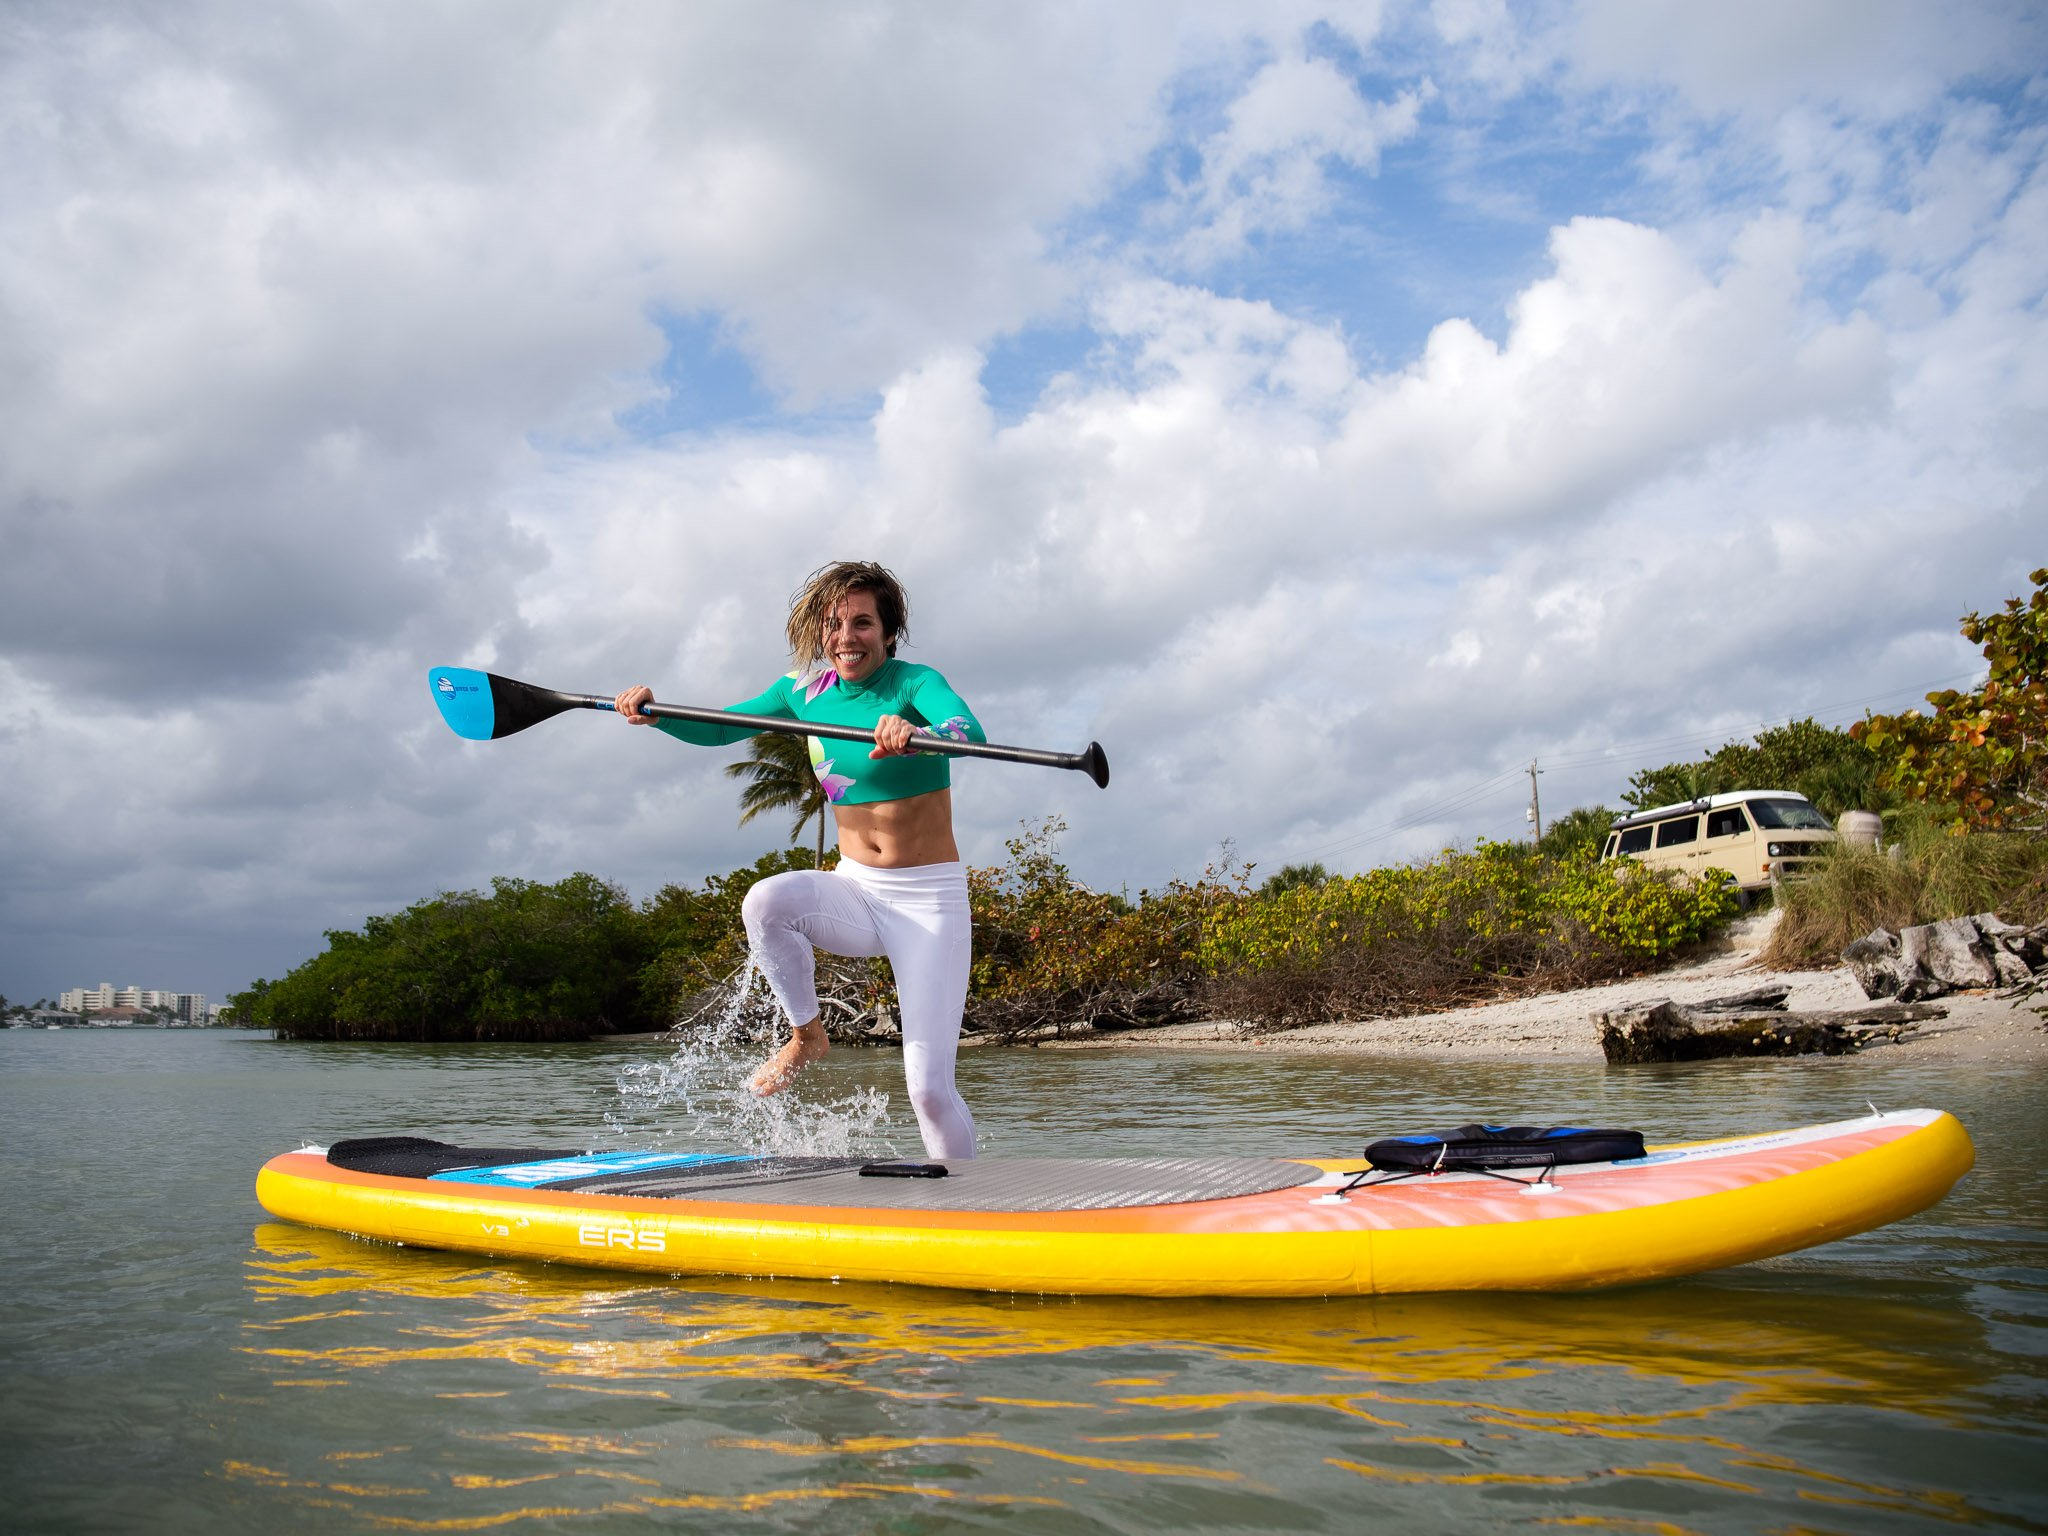 ERS Rider Cole jumping on a Paddleboarders